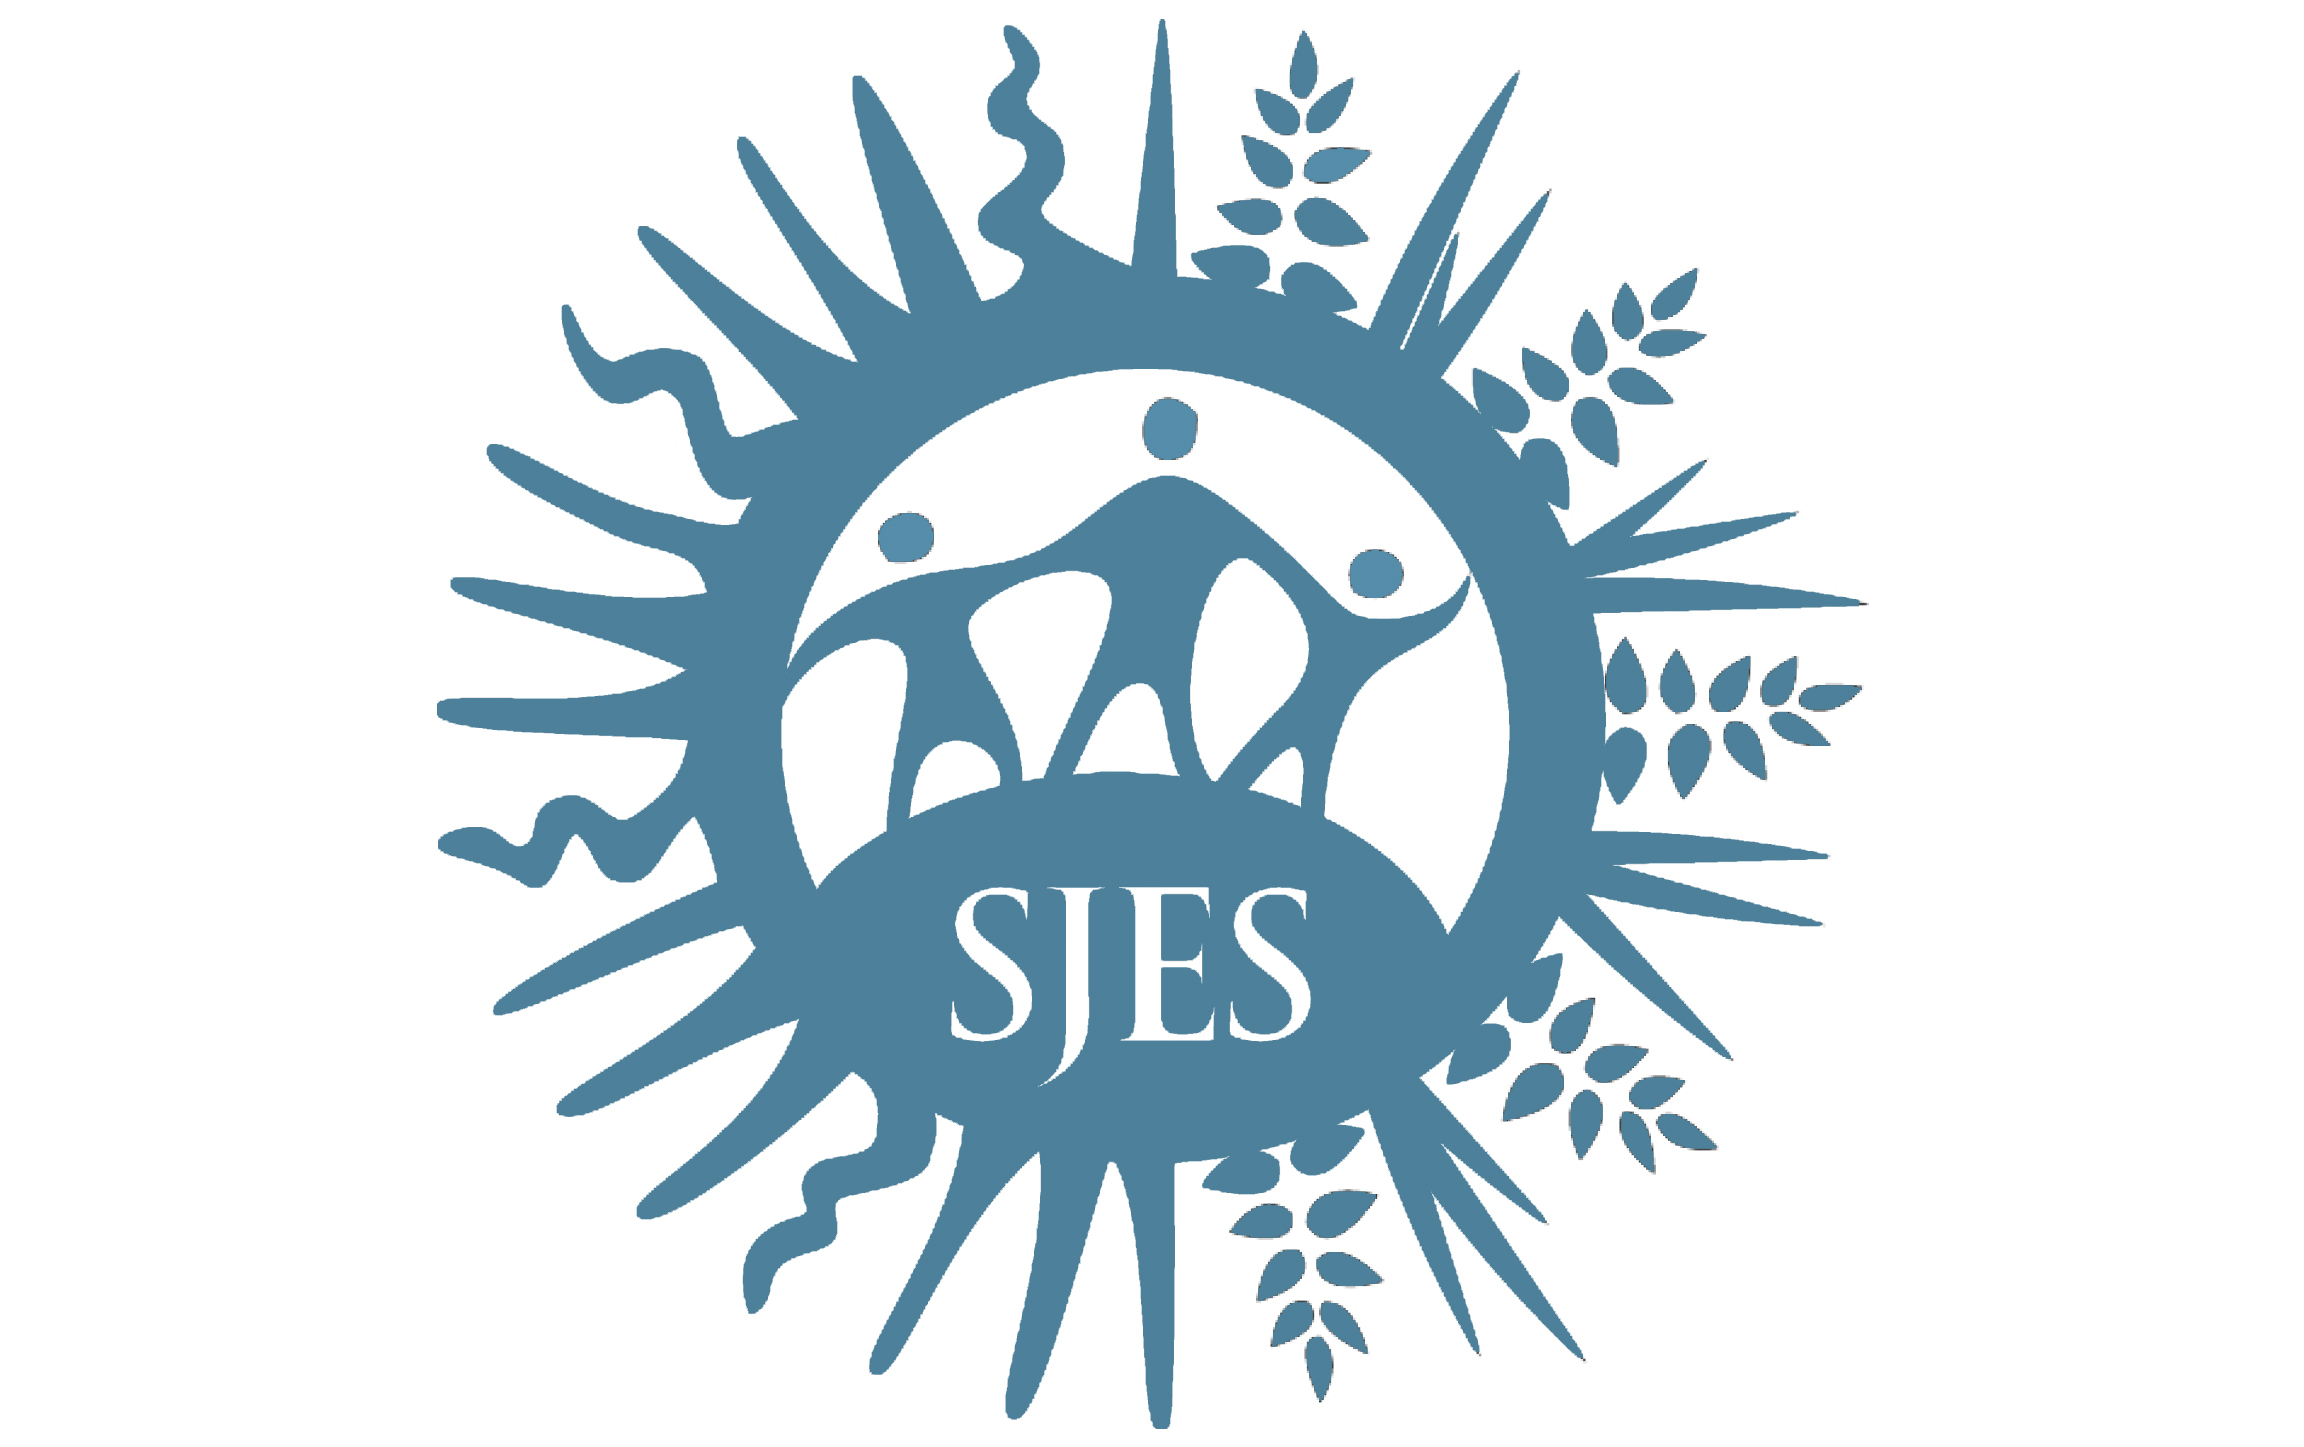 Logo SJES (Social Justice and Ecology Secretariat)